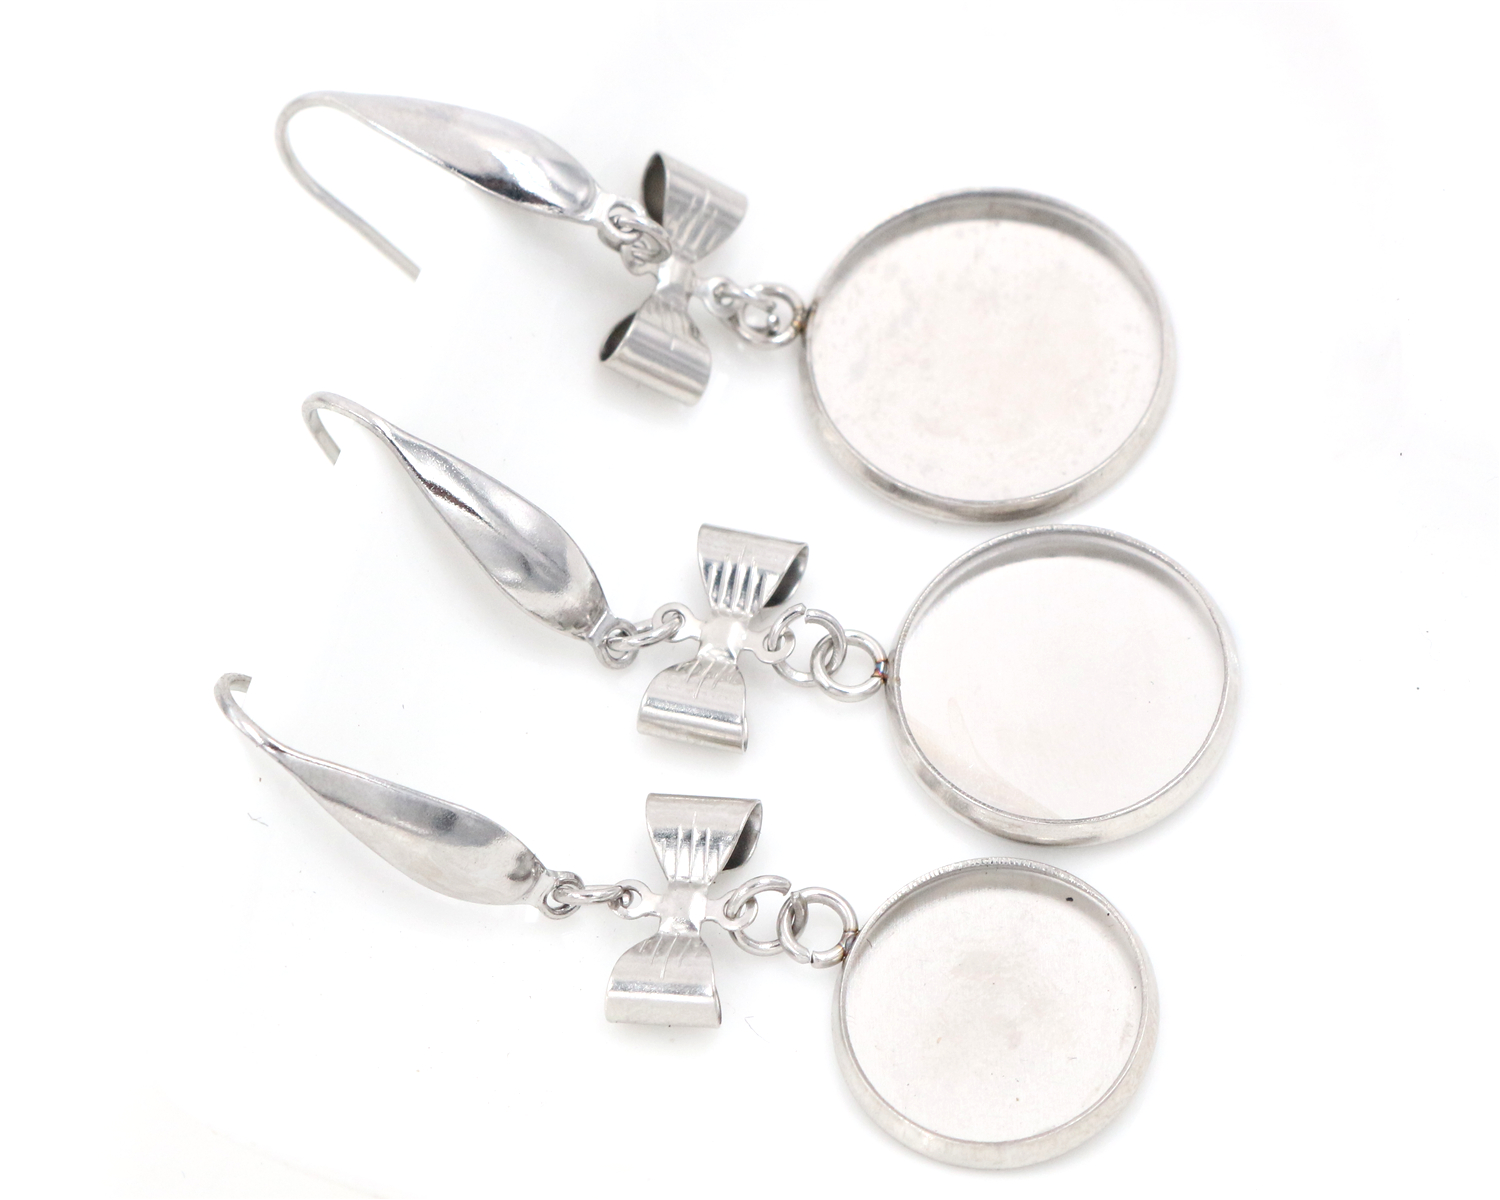 ( No Fade ) 141618mm 10pcslots Stainless Steel Handmade Style Lever Back Earrings BlankBase,Dangle Earring Setting